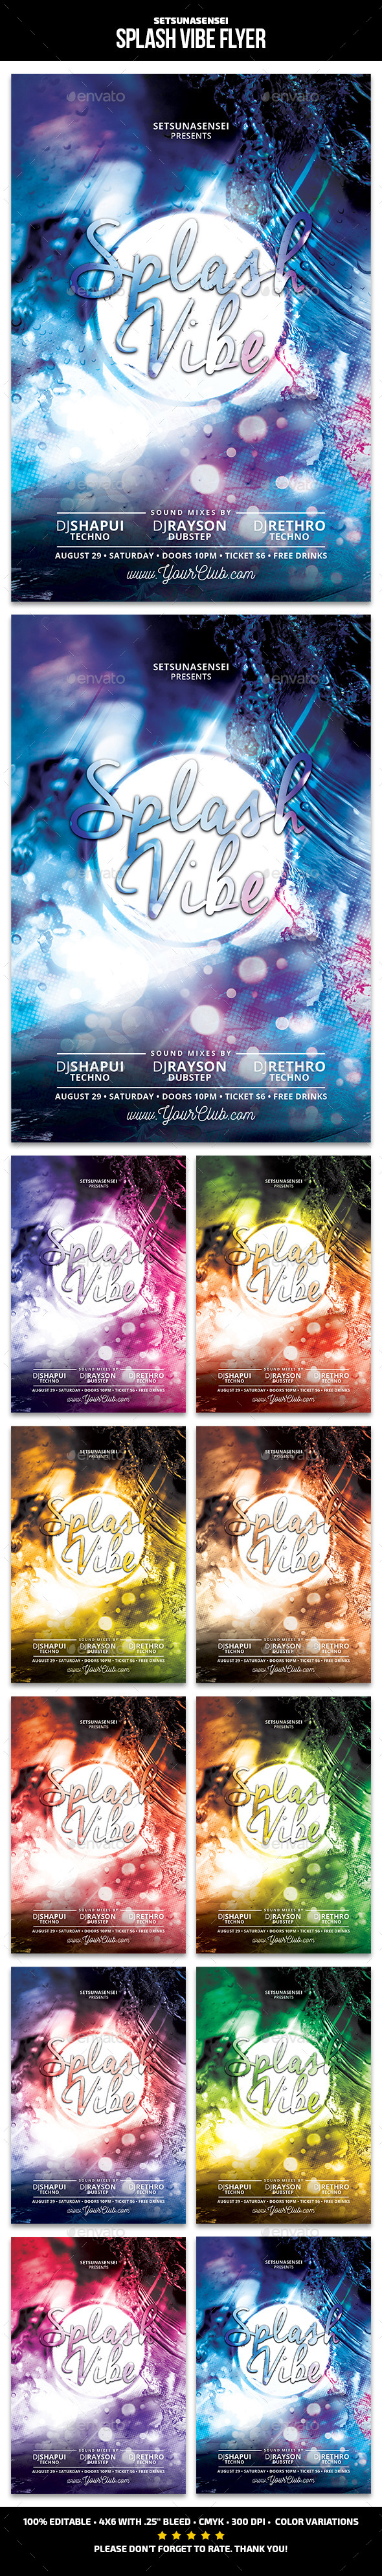 Splash Vibe Flyer - Clubs & Parties Events